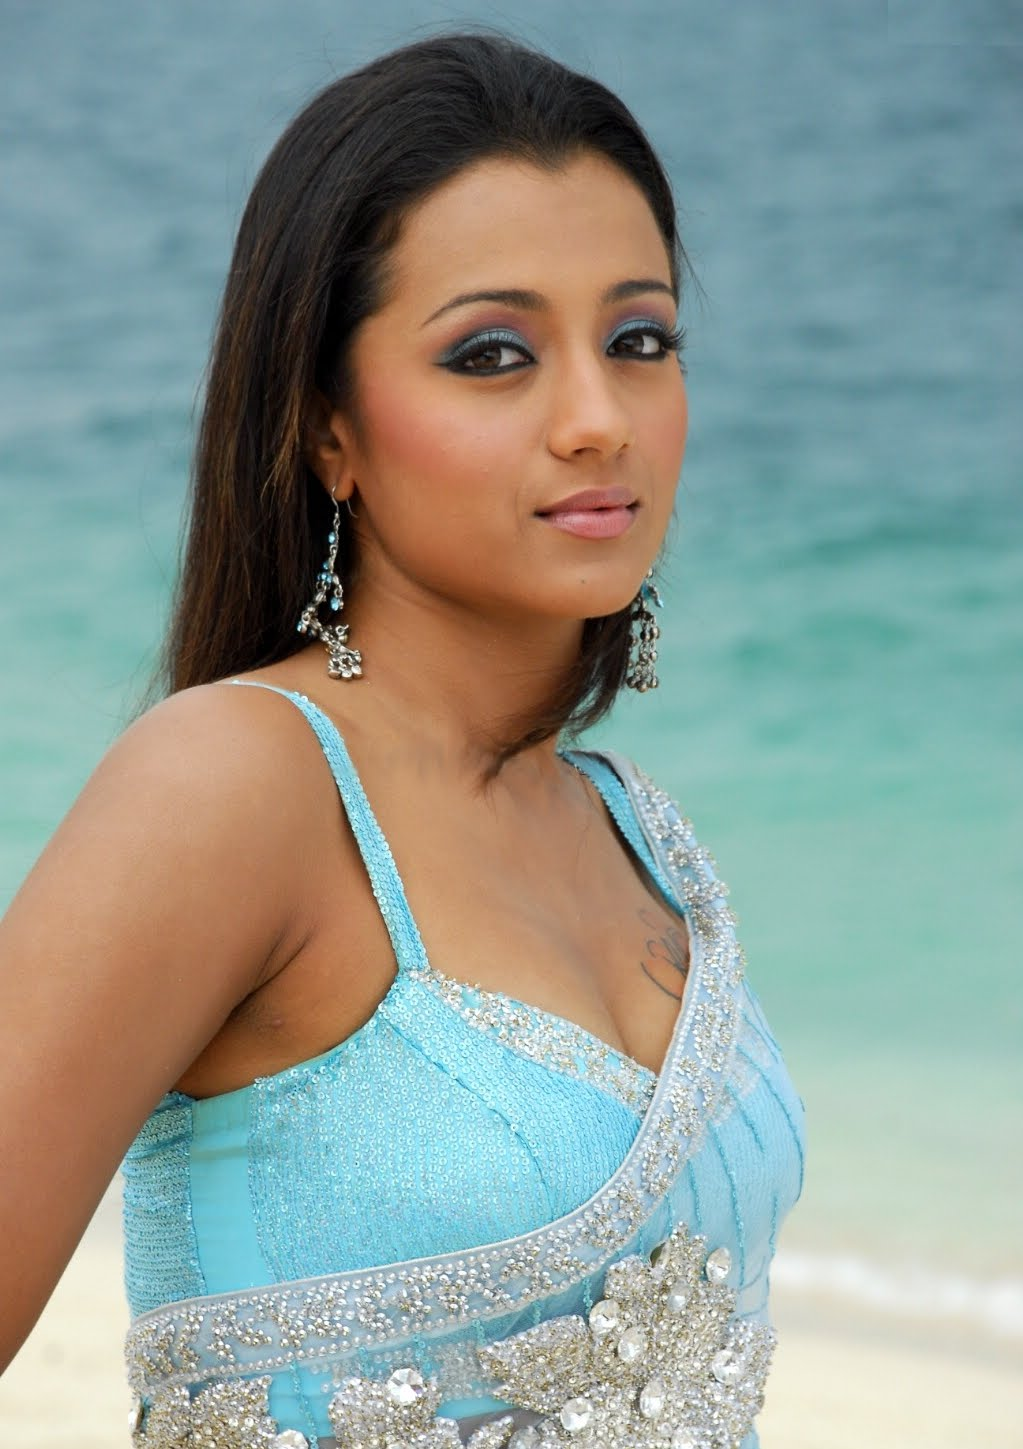 Trisha Very Hot Unseen Ultra Hq Stills, Pics  Hq Updated-4767